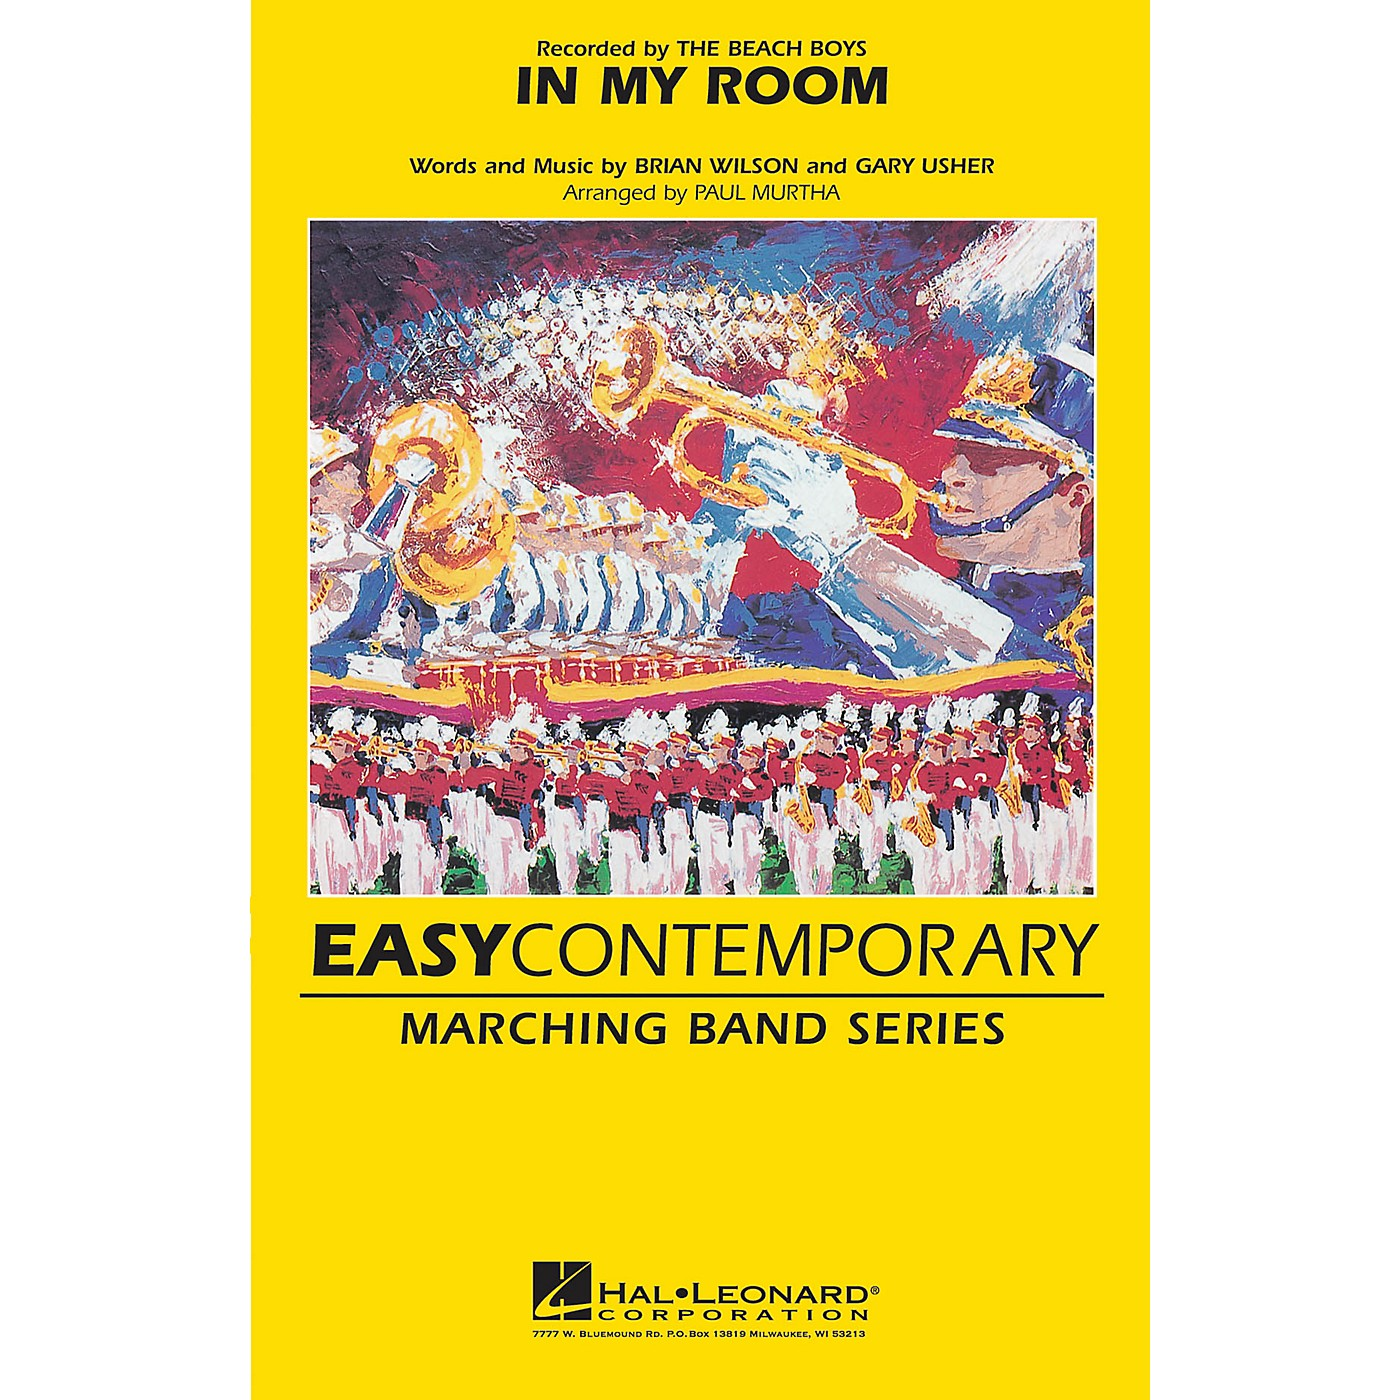 Hal Leonard In My Room Marching Band Level 2-3 by The Beach Boys Arranged by Paul Murtha thumbnail